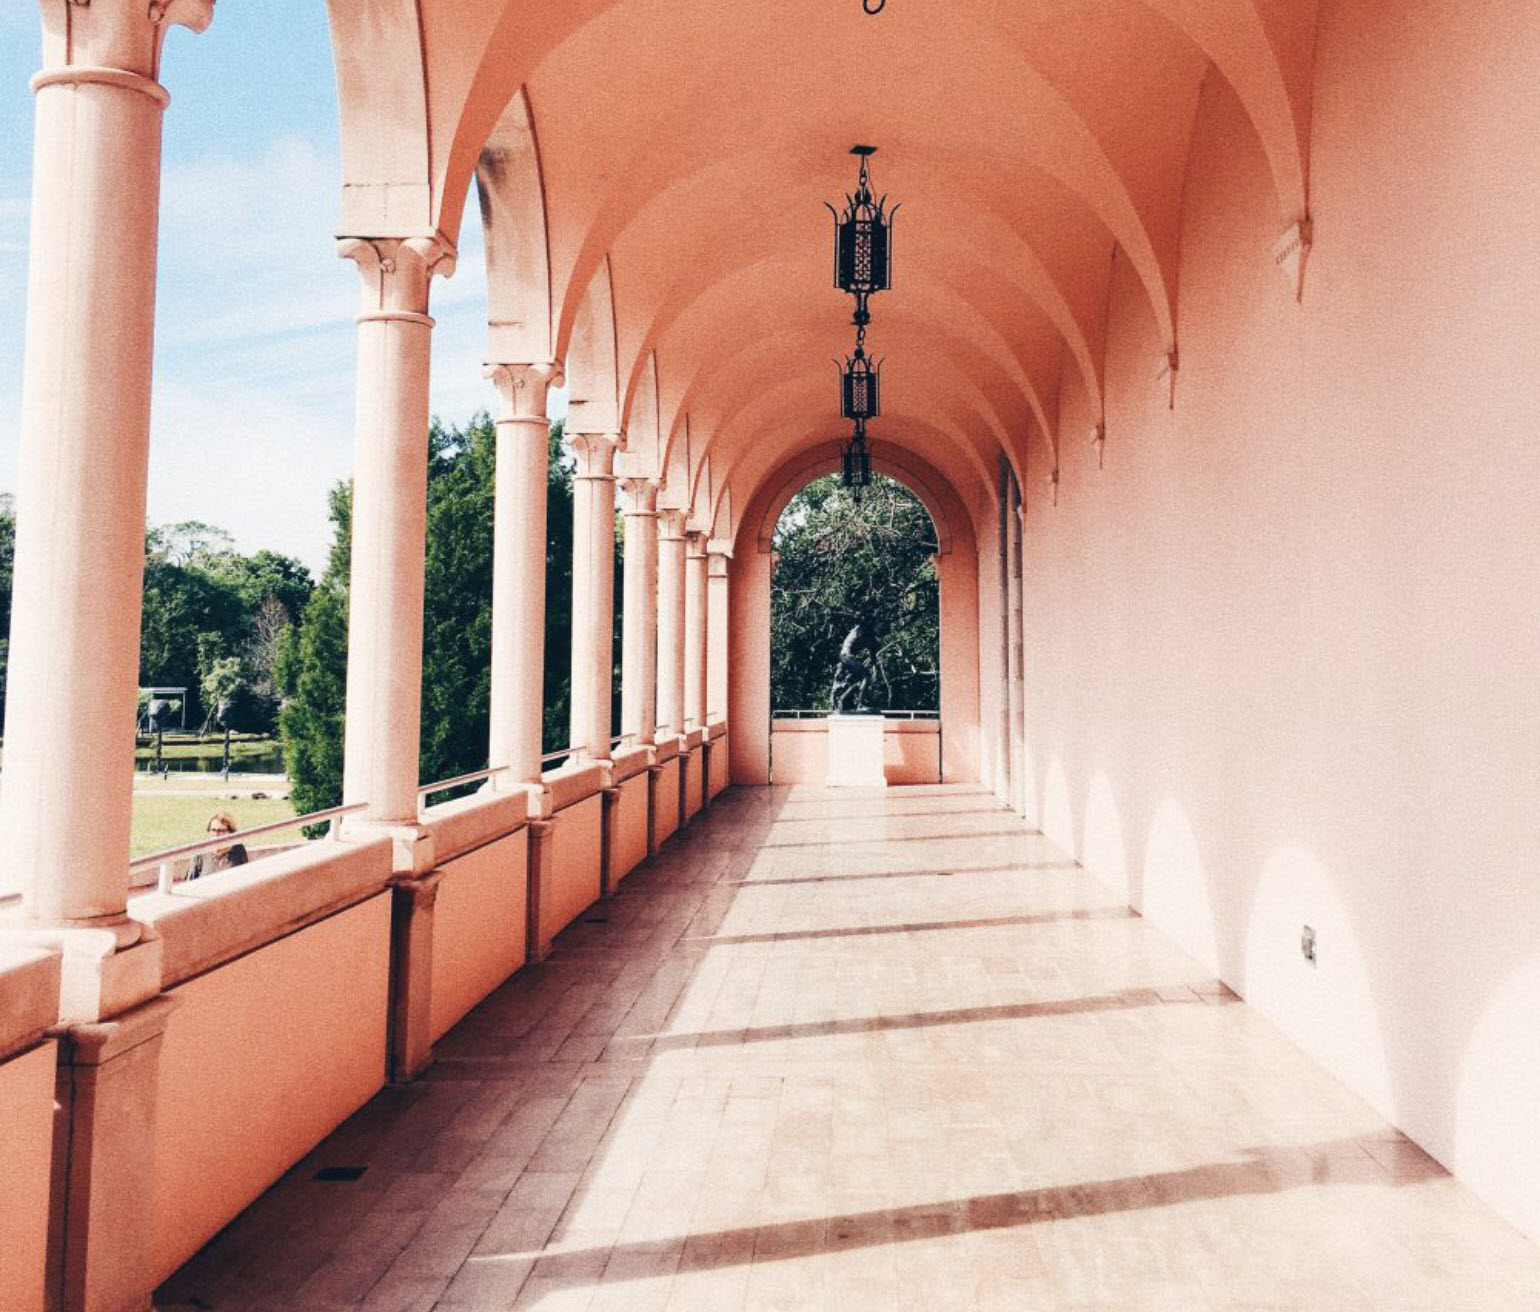 A peach archway located at the Ringling Museum of Art